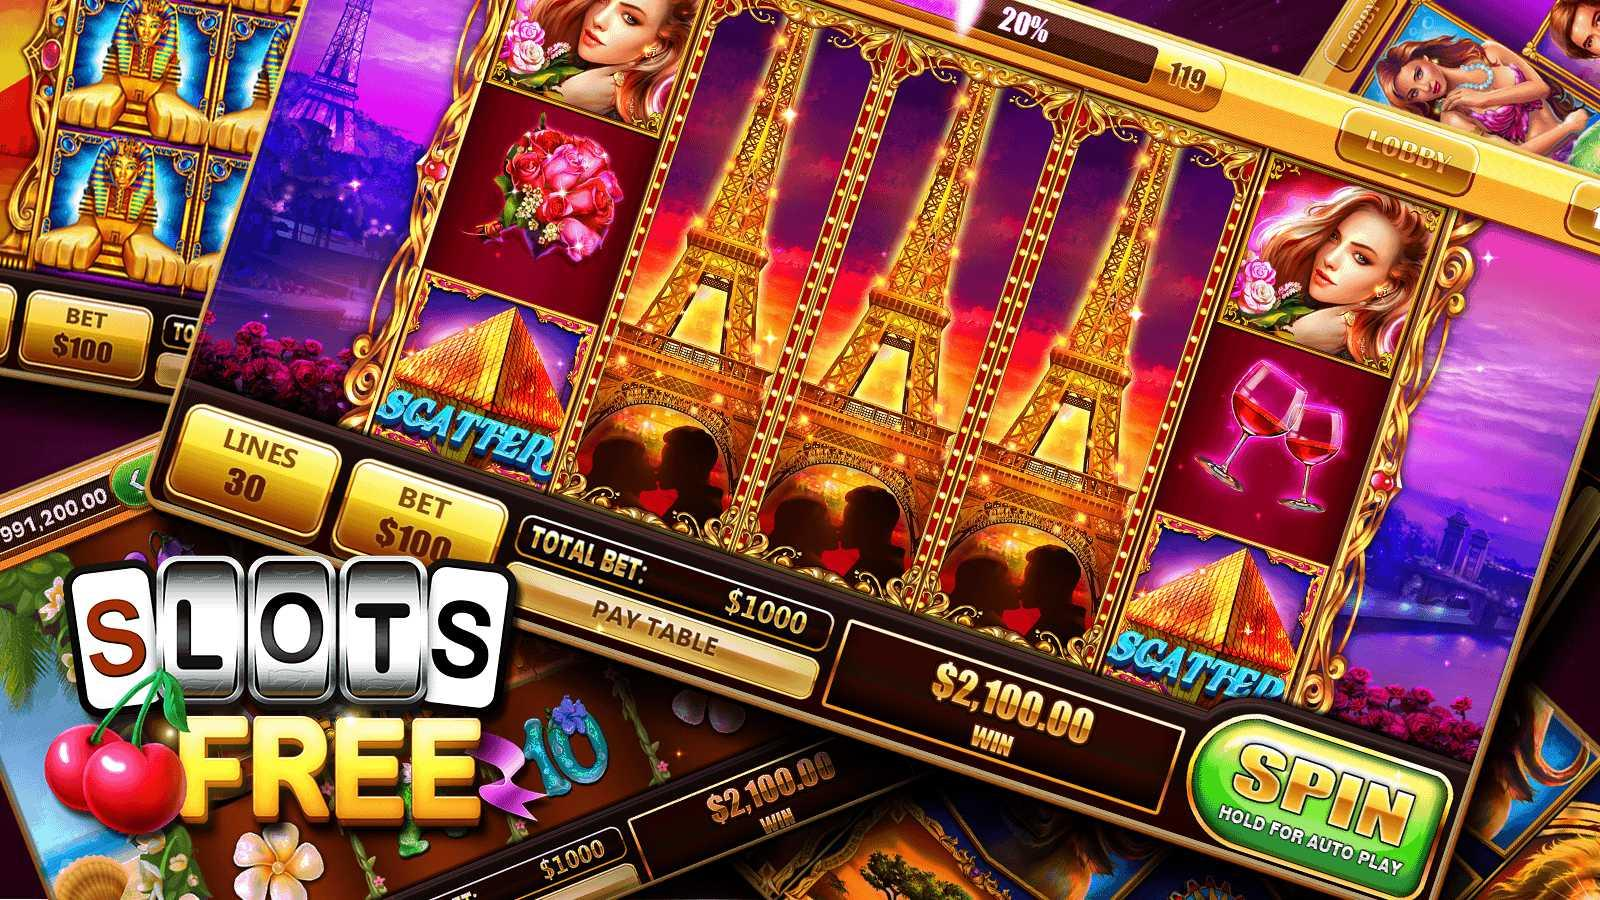 Wild at Heart Slot Machine - Play for Free & Win for Real